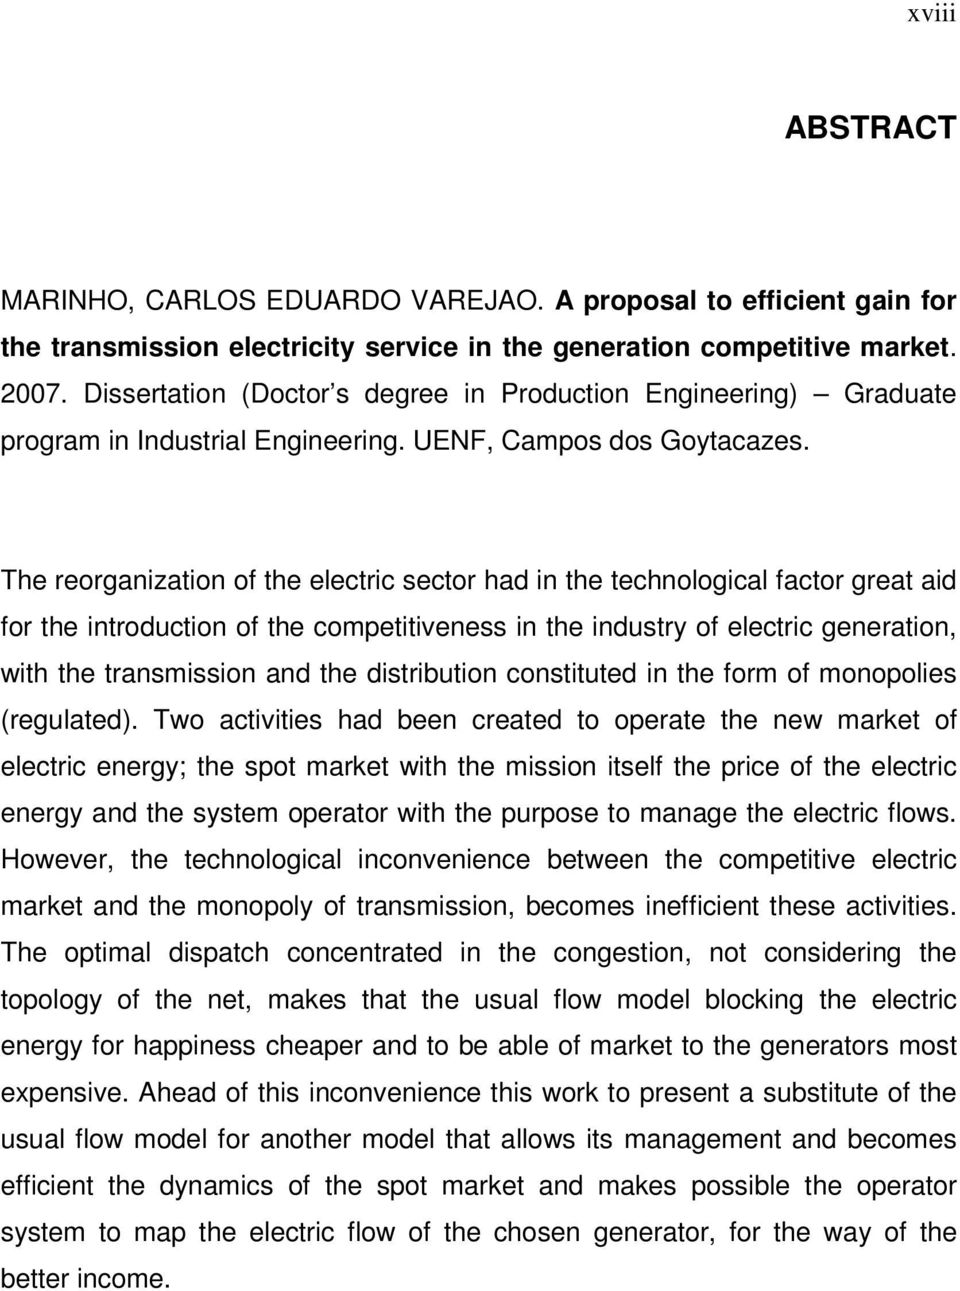 The reorganization of the electric sector had in the technological factor great aid for the introduction of the competitiveness in the industry of electric generation, with the transmission and the